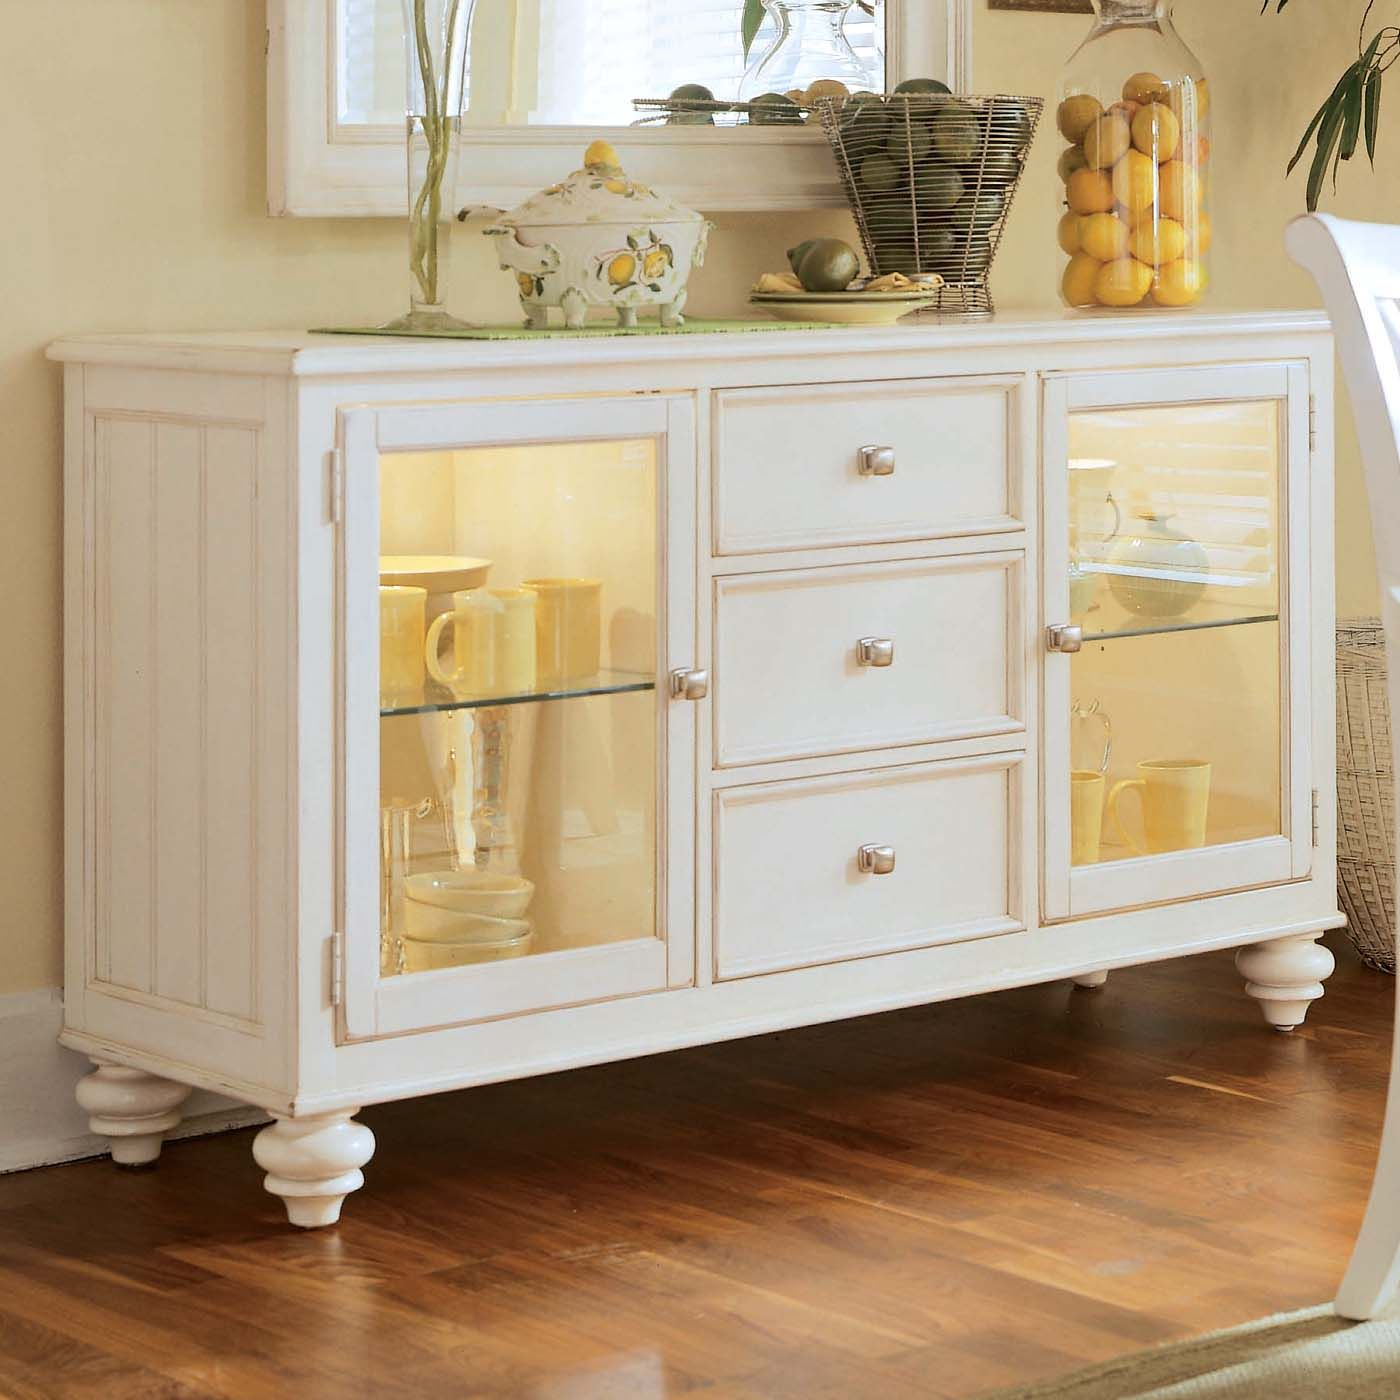 White buffet table furniture - American Drew Camden Antique White China Buffet Credenza Features 2 Glass Doors With 1 Adjustable Glass Shelf In Each 3 Drawers Silver Tray 2 Can Lights